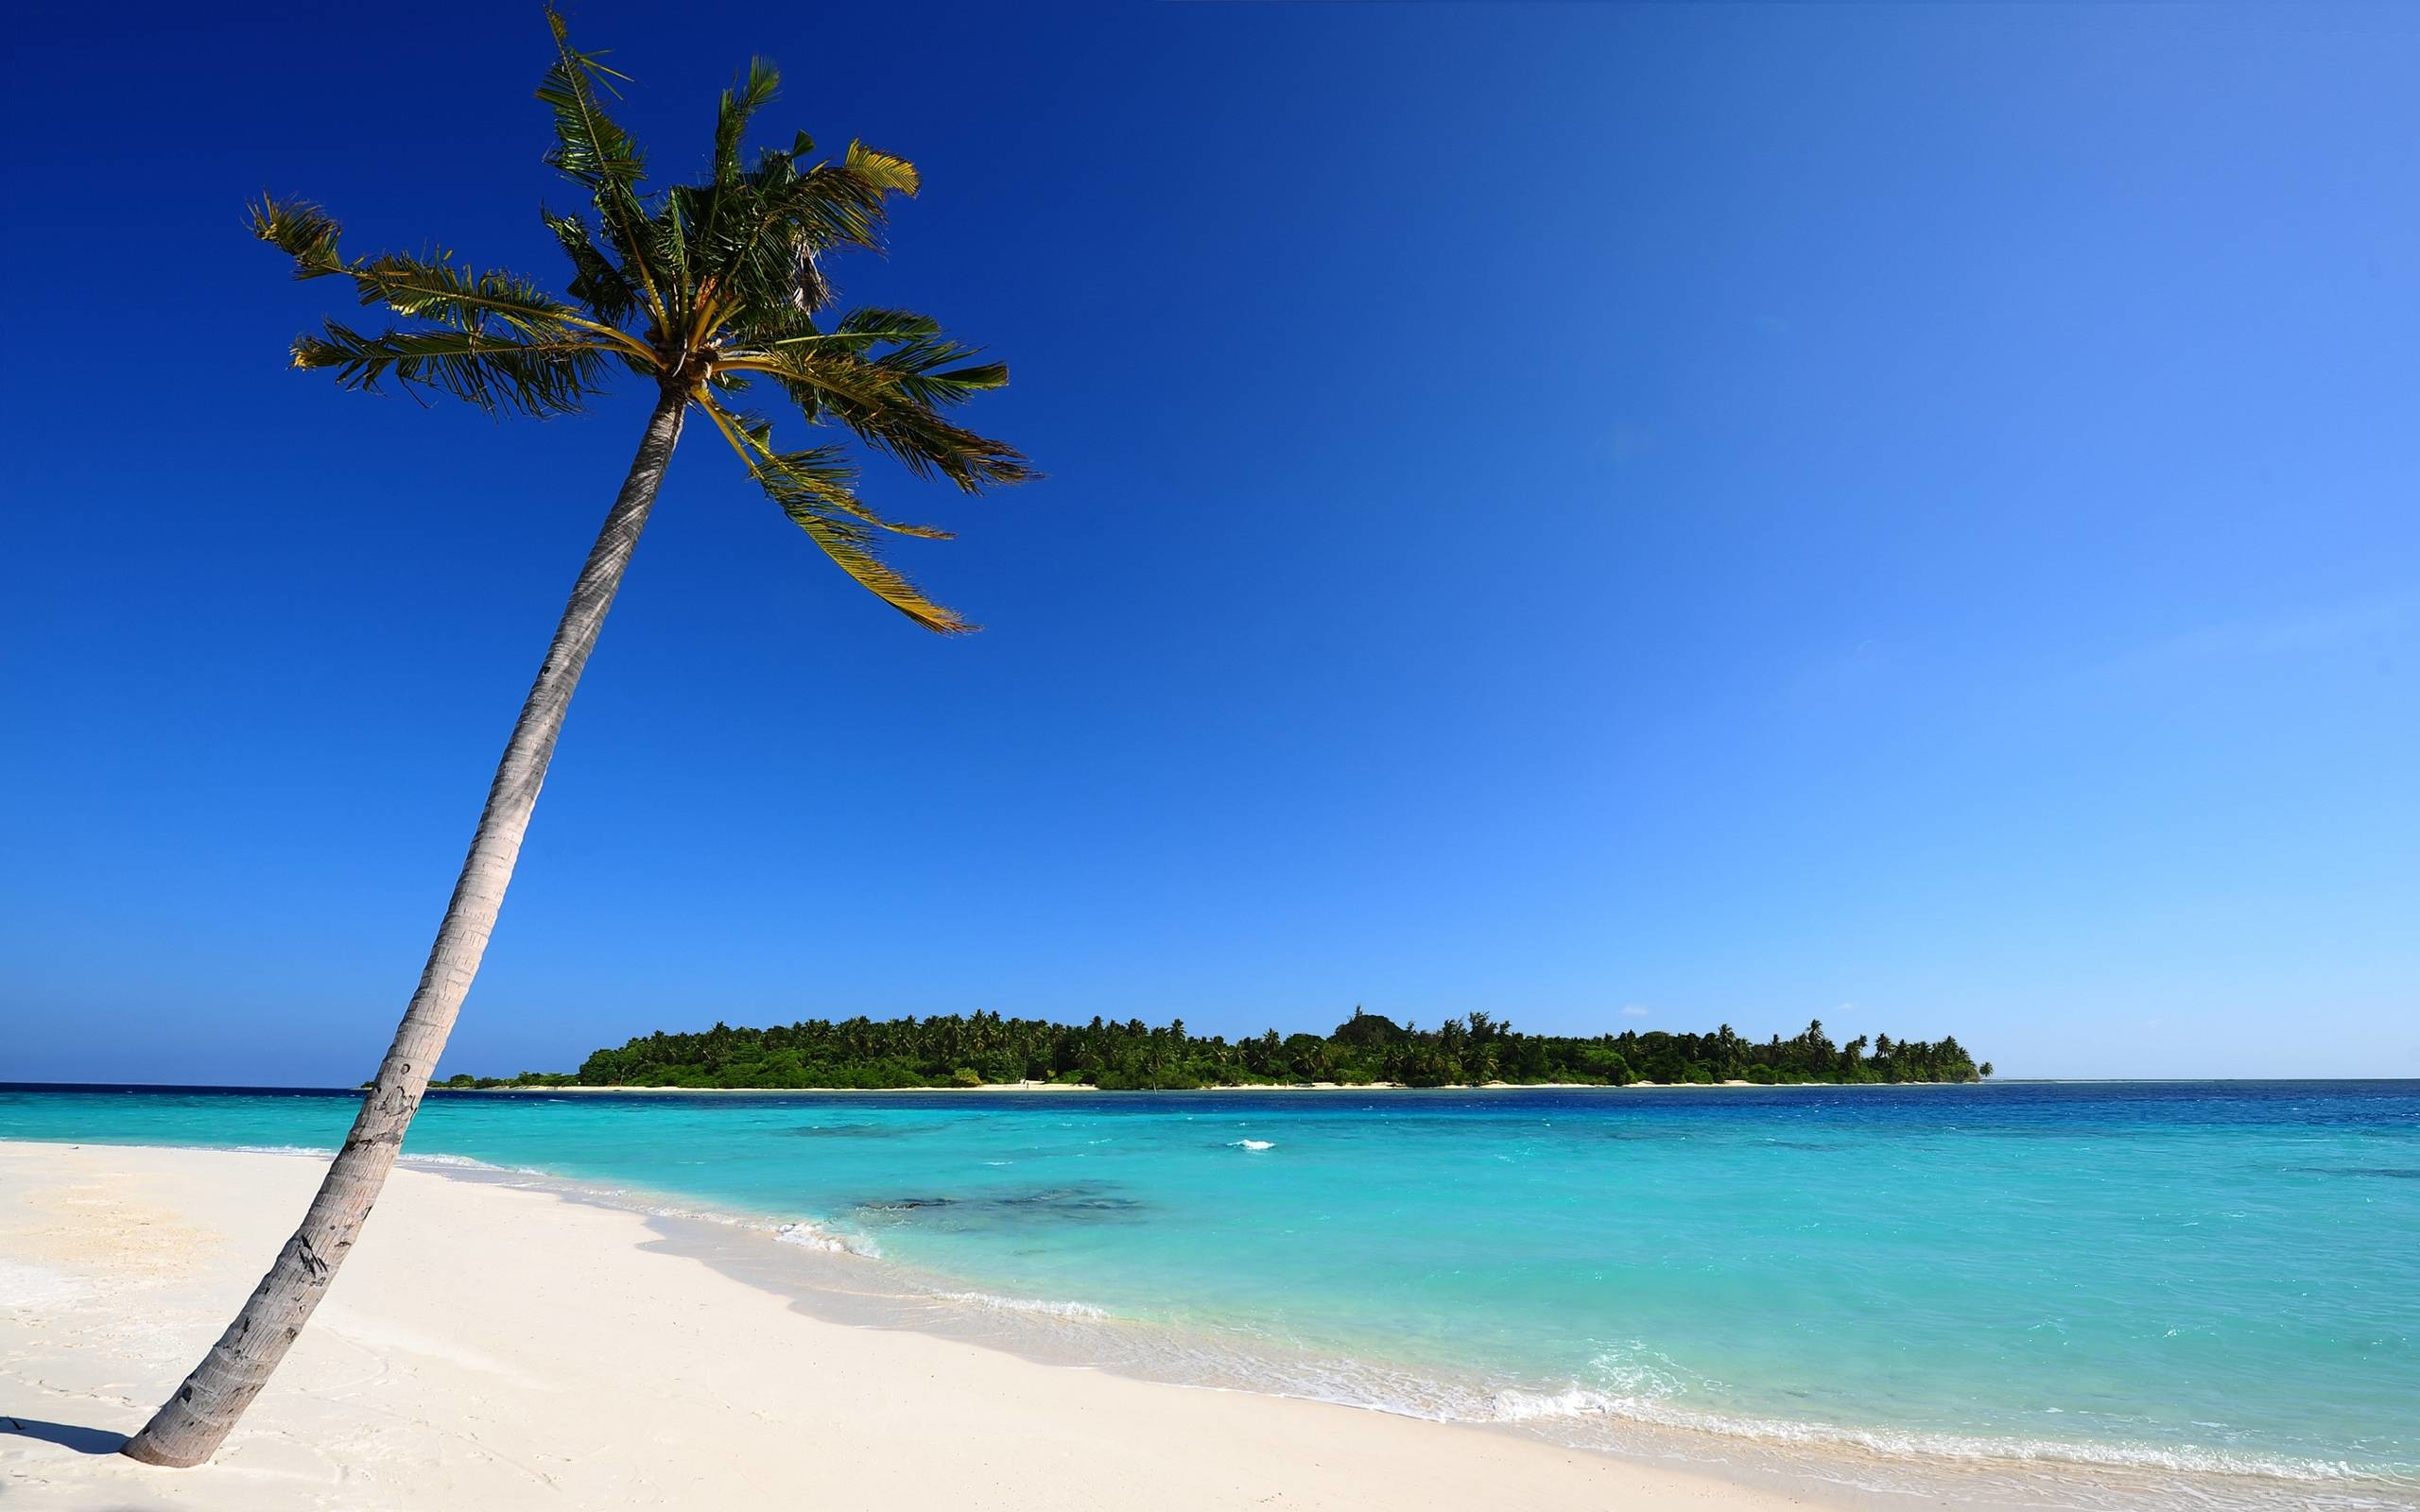 Beach Background Images Wallpapers and Background